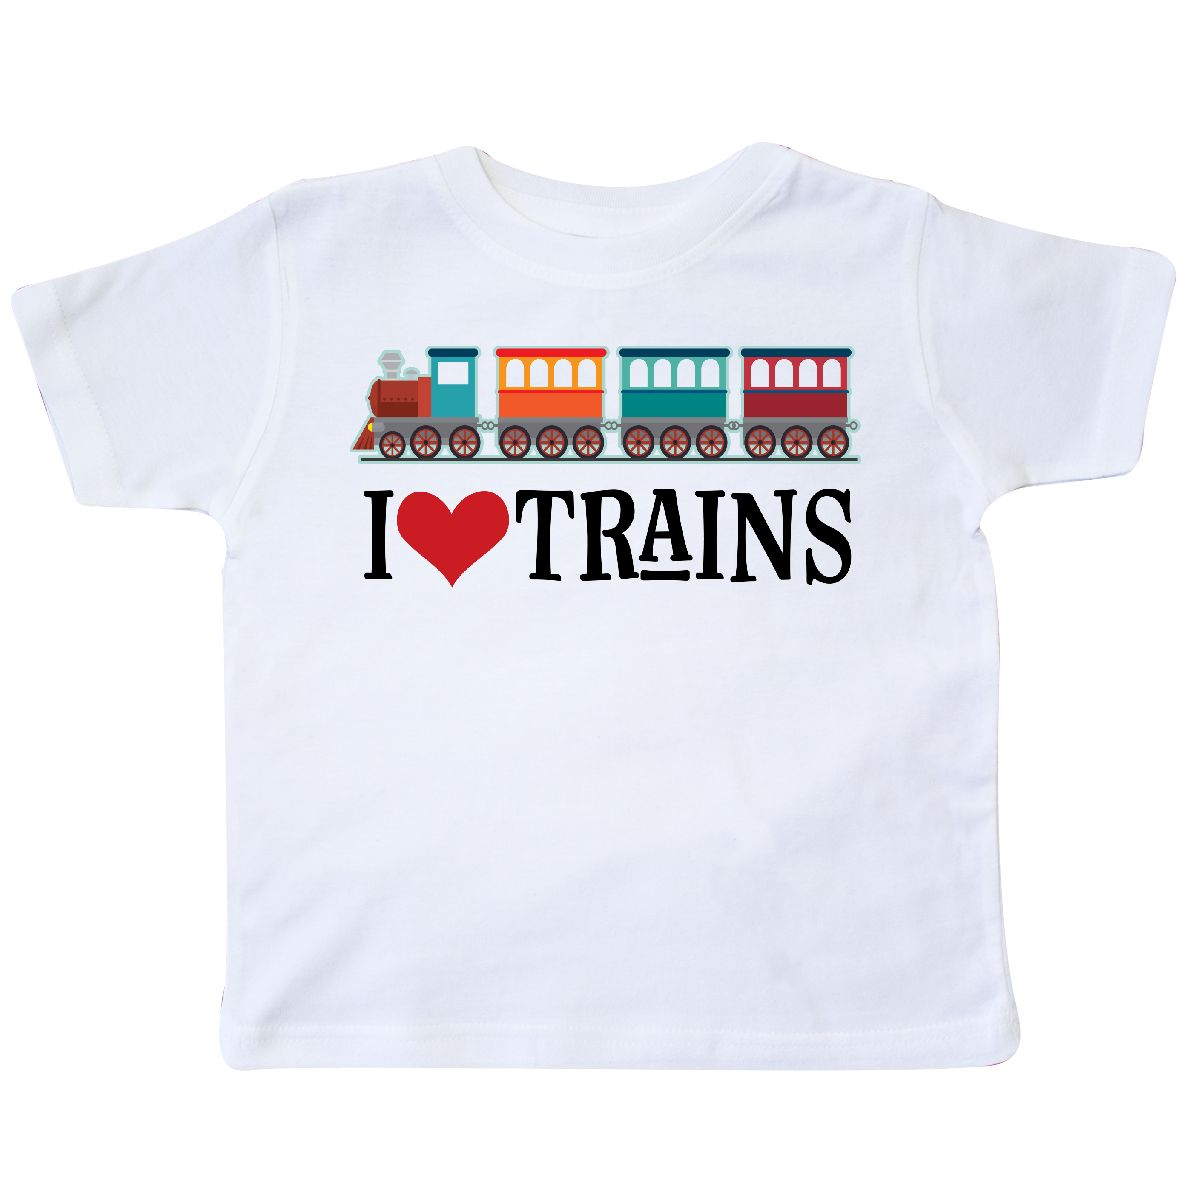 Inktastic-I-Love-Trains-Toddler-T-Shirt-Choo-Childs-Clothing-Apparel-Railfan-Set thumbnail 27